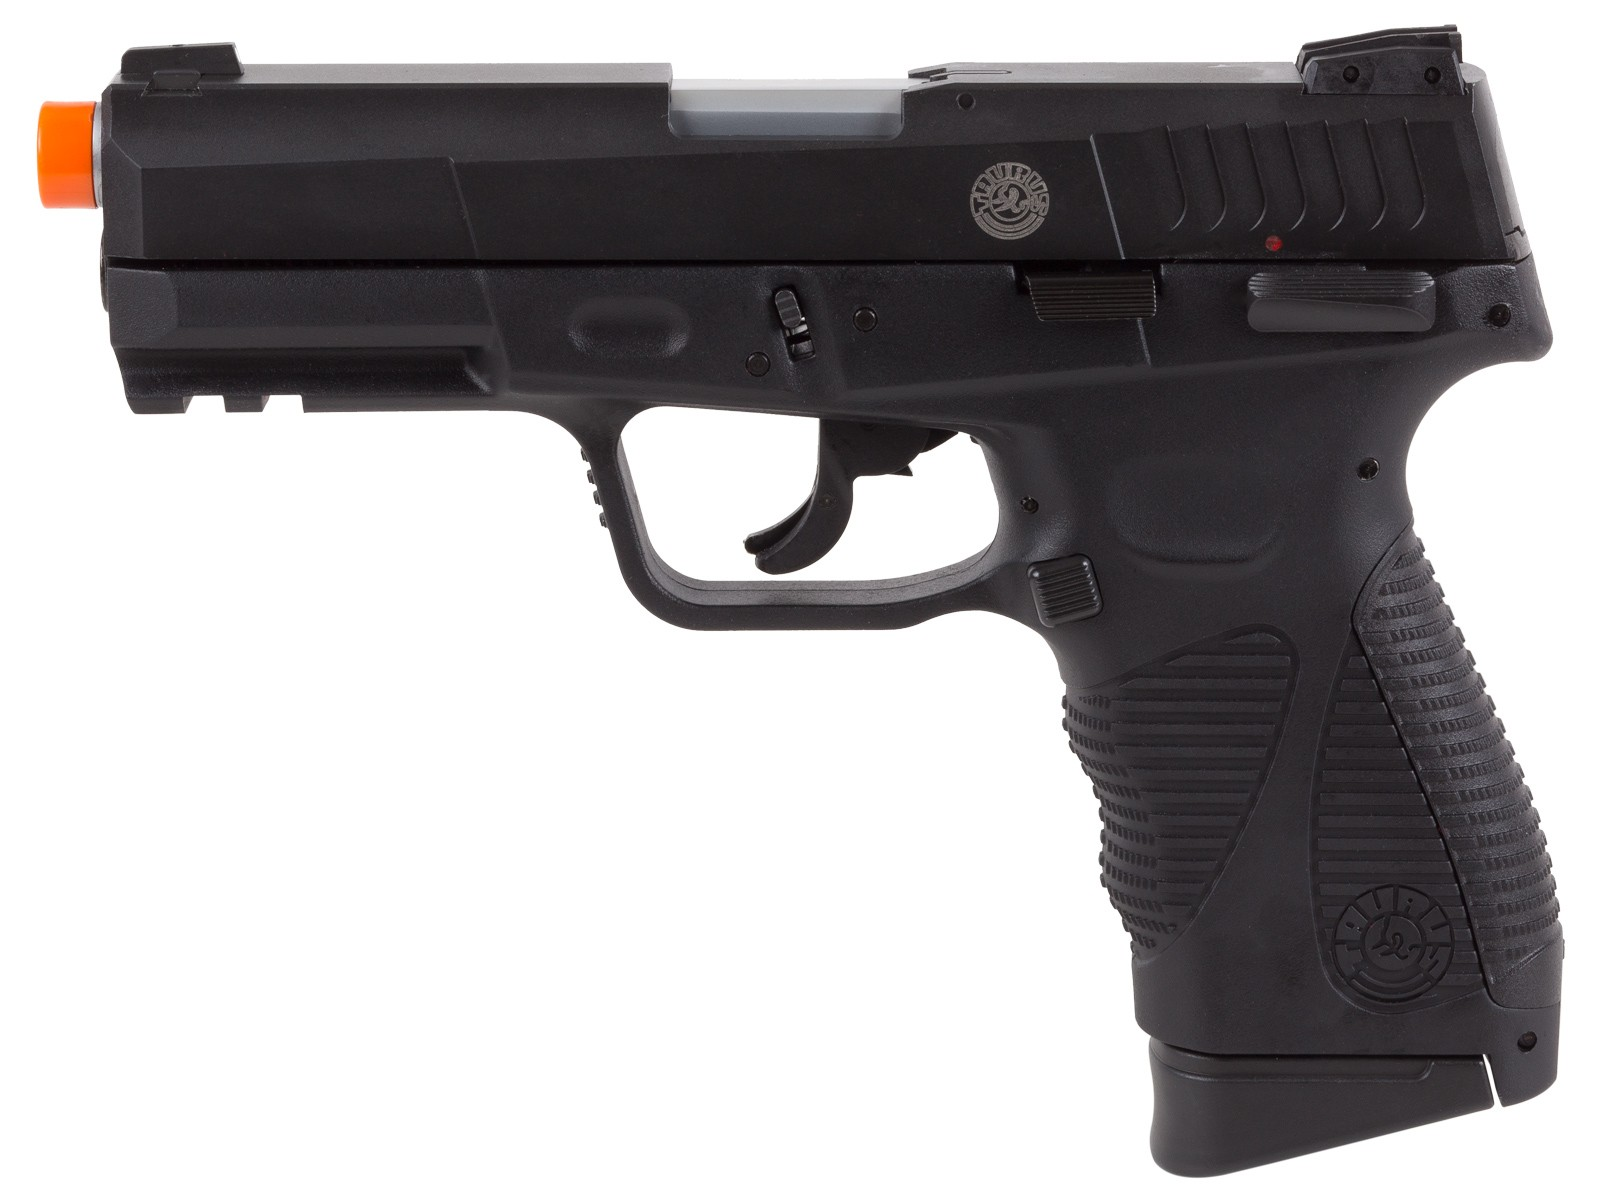 Taurus_PT247_G2_Airsoft_CO2_Blowback_Black_6mm